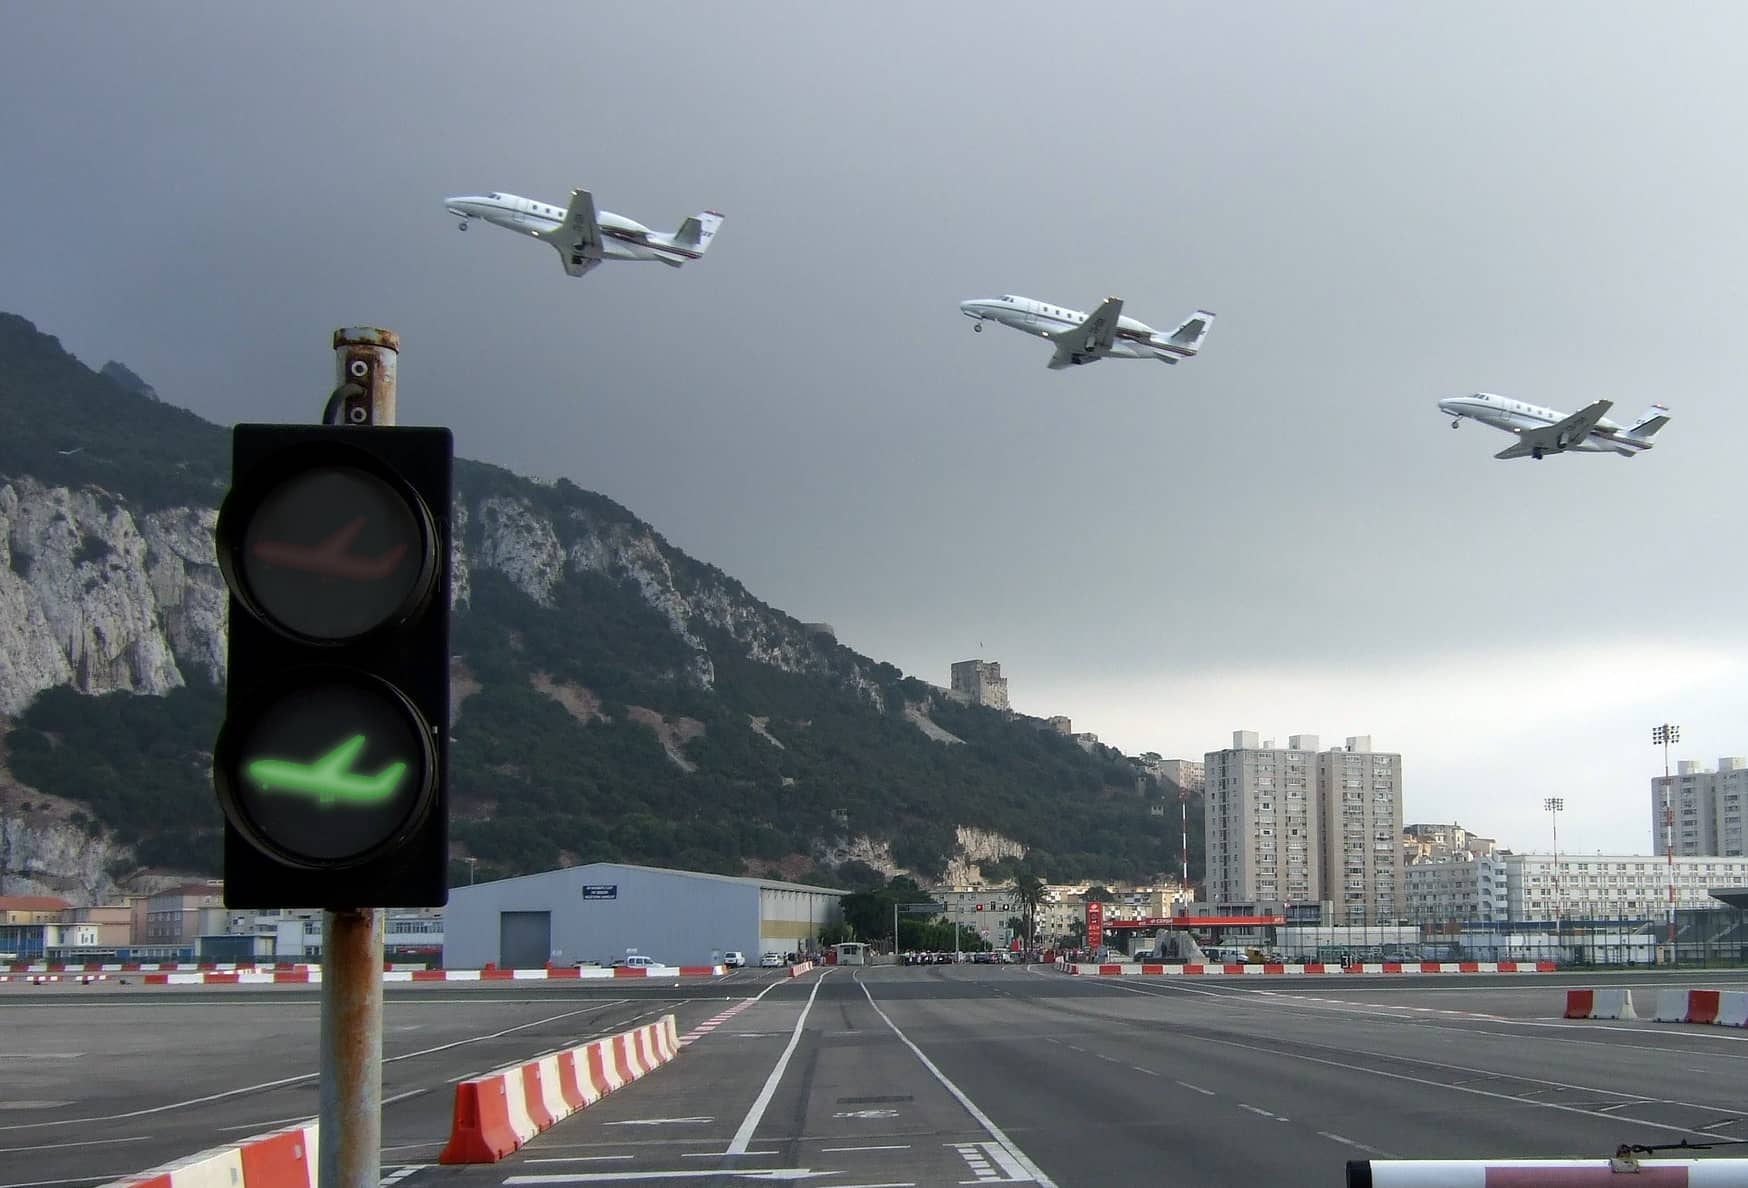 Is the Traffic Light System Really Giving Air Travel the Green Light?